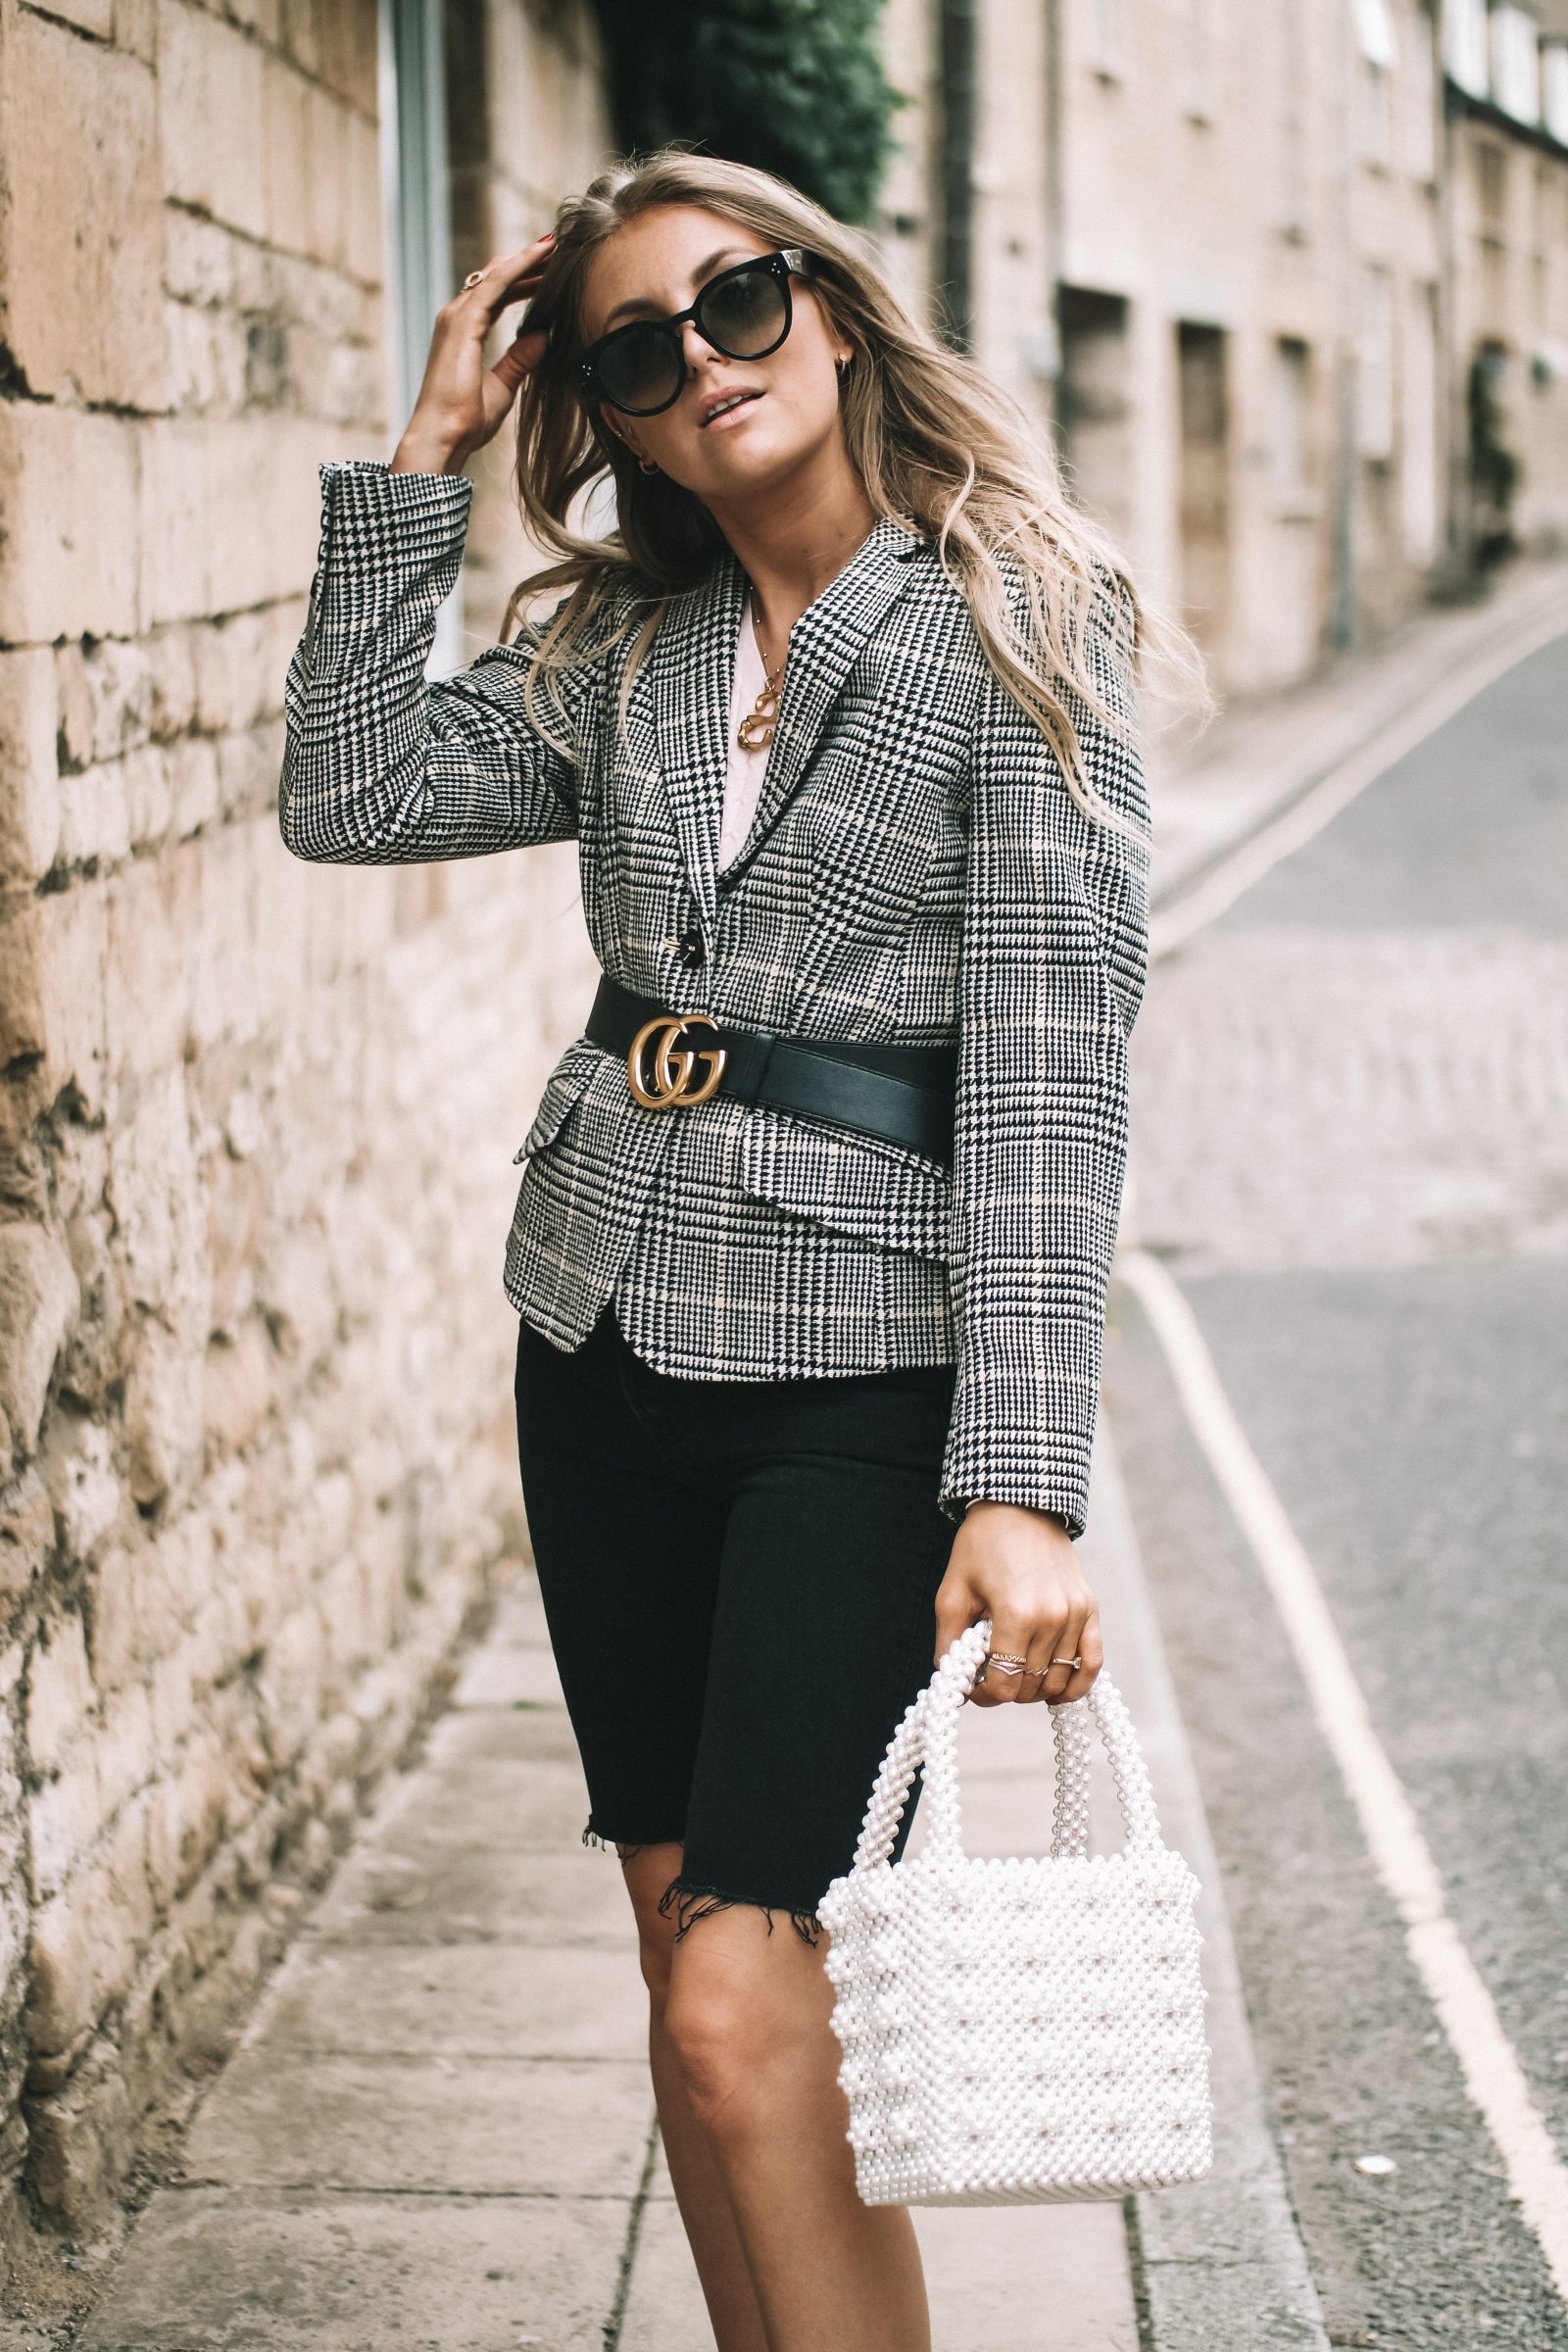 LFW - Laura Ashley Houndstooth Blazer - Sinead Crowe